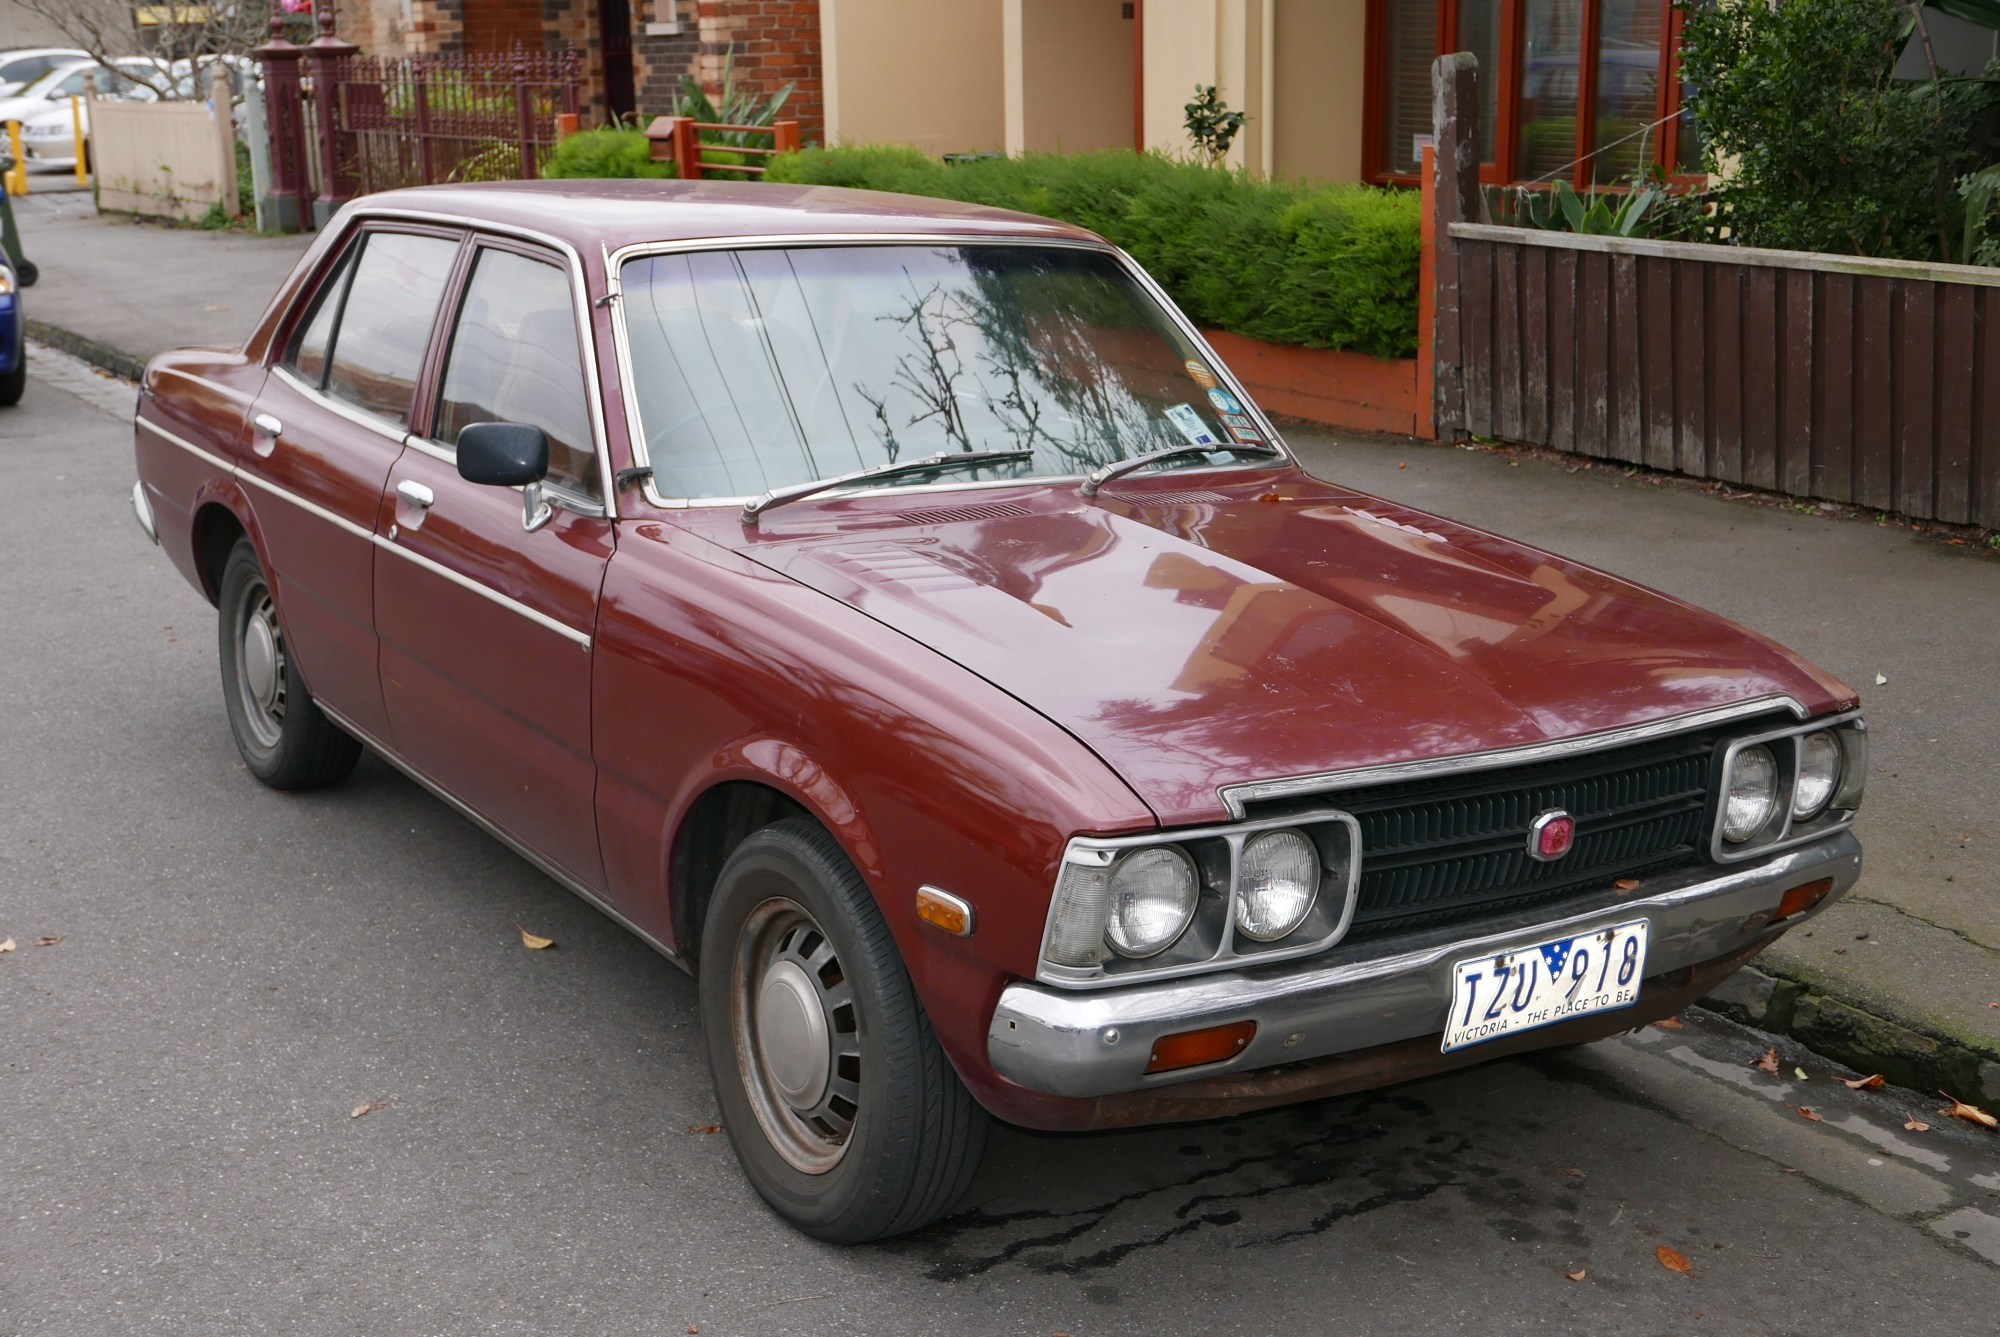 hight resolution of 1975 toyota corona rt104 se sedan 2015 06 18 01